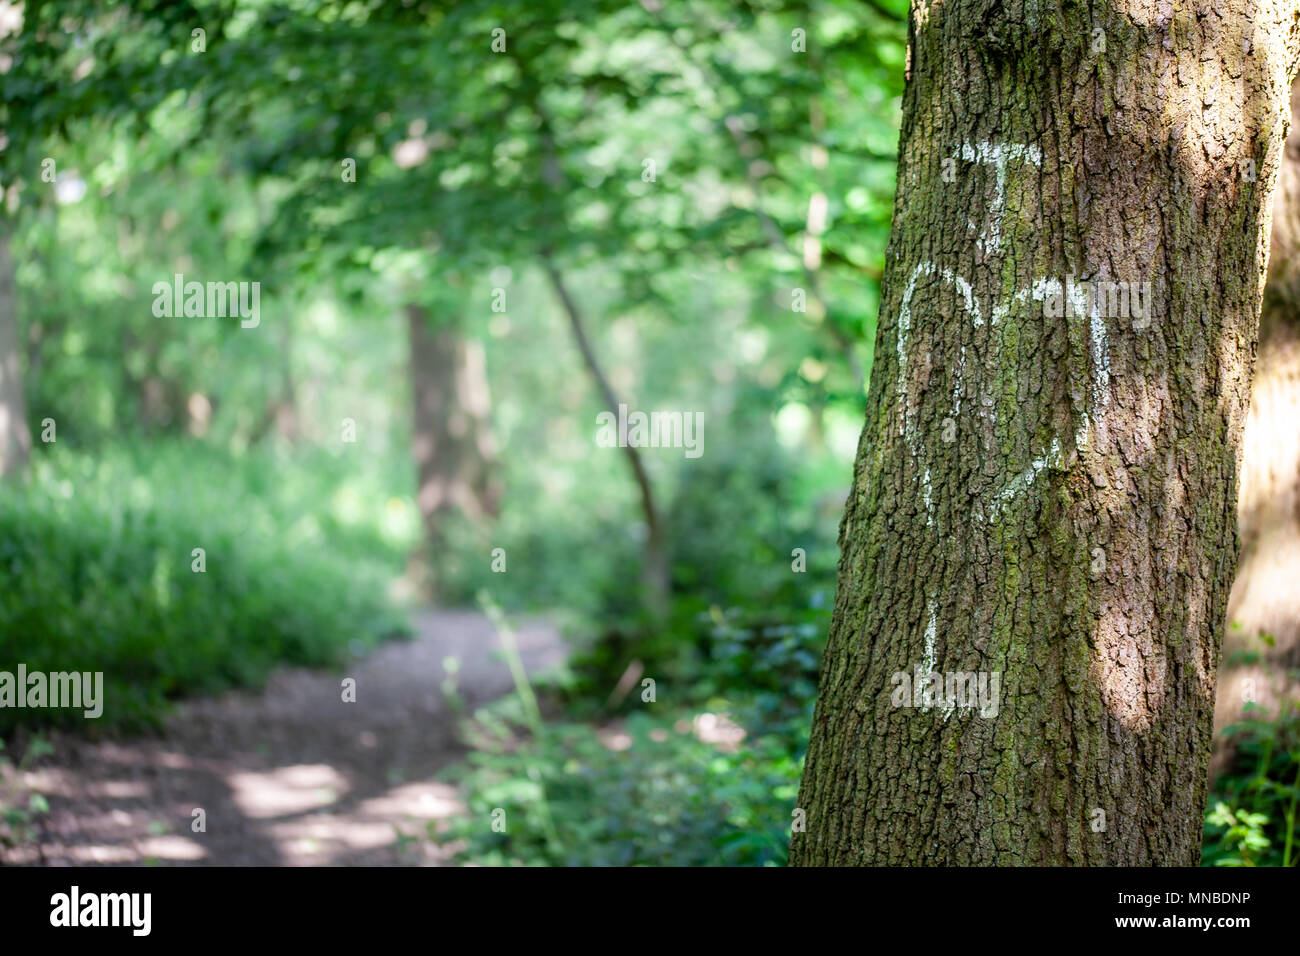 Initals of lovers written in chalk on a tree trunk - Stock Image